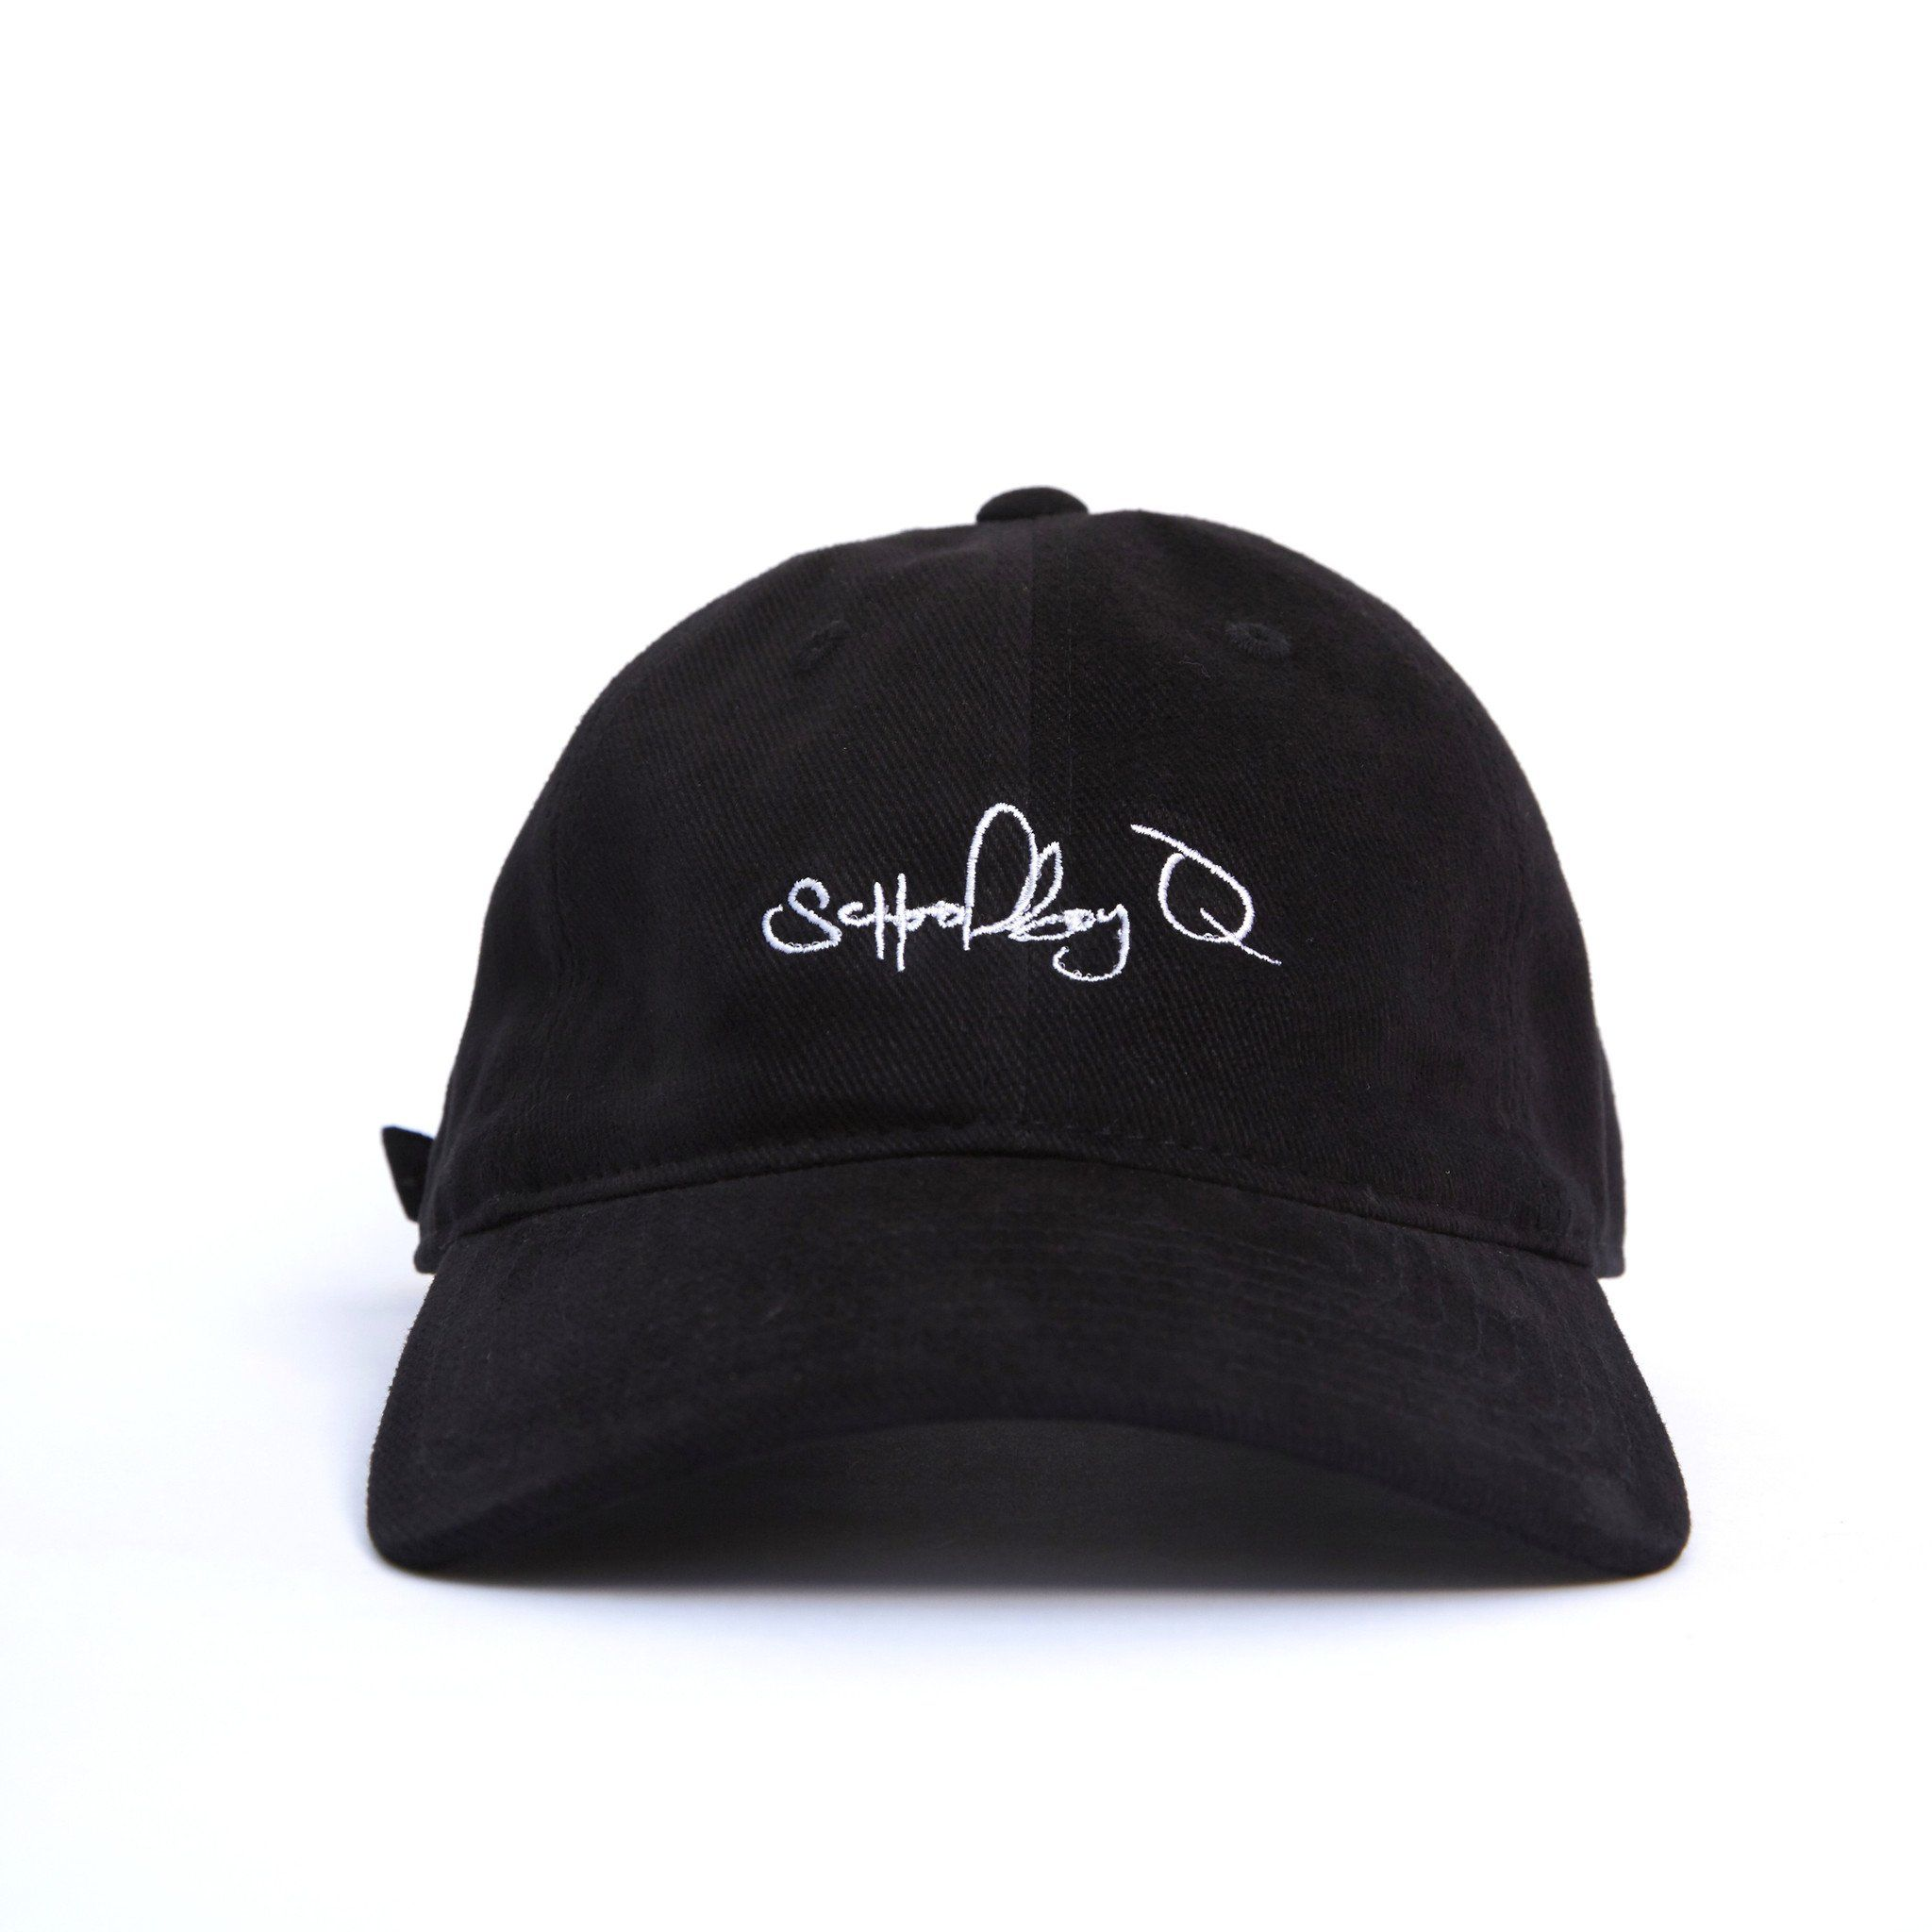 7c36fb343e3981 ScHoolBoy Q Hat (Black) | Dad Hats | Hats, Schoolboy q, Dad hats